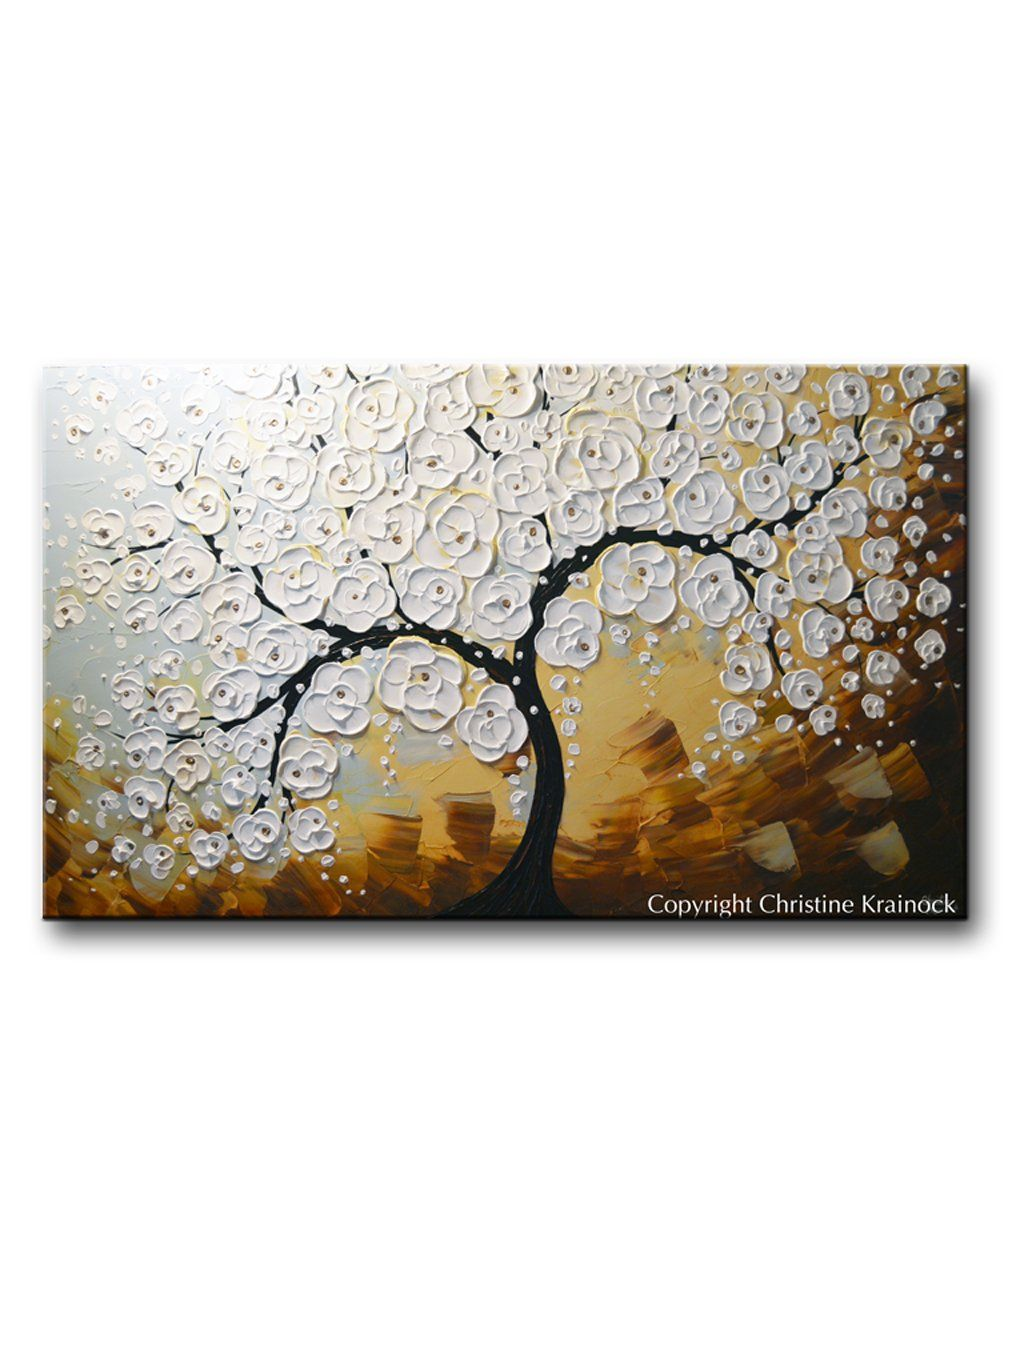 Original Art Abstract Painting Blossoming Cherry Tree Textured White Flowers Wall Art Blue Brown Xl 36x60 Flower Wall Art Tree Textures Abstract Art Painting